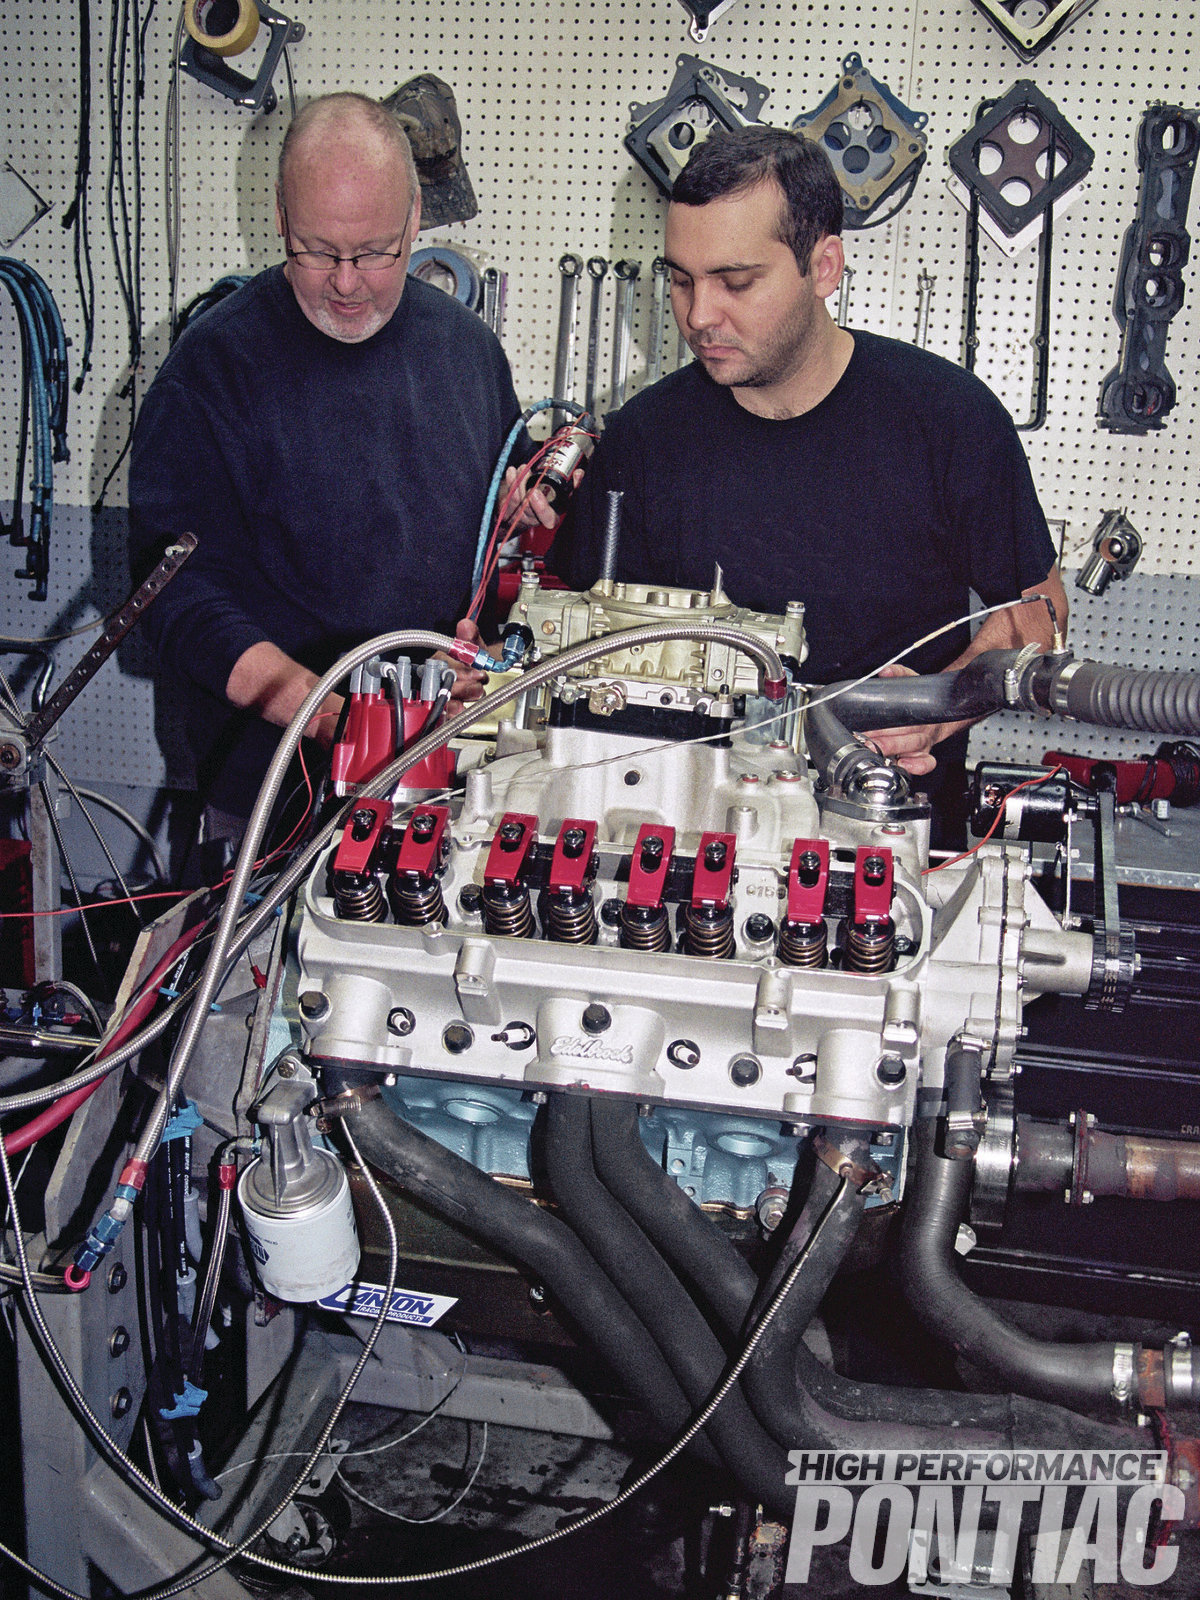 Craig Wise and Corey Porter prepare The Mule for dyno testing with the Edelbrock Performer D-Port heads and 92-octane pump gas.